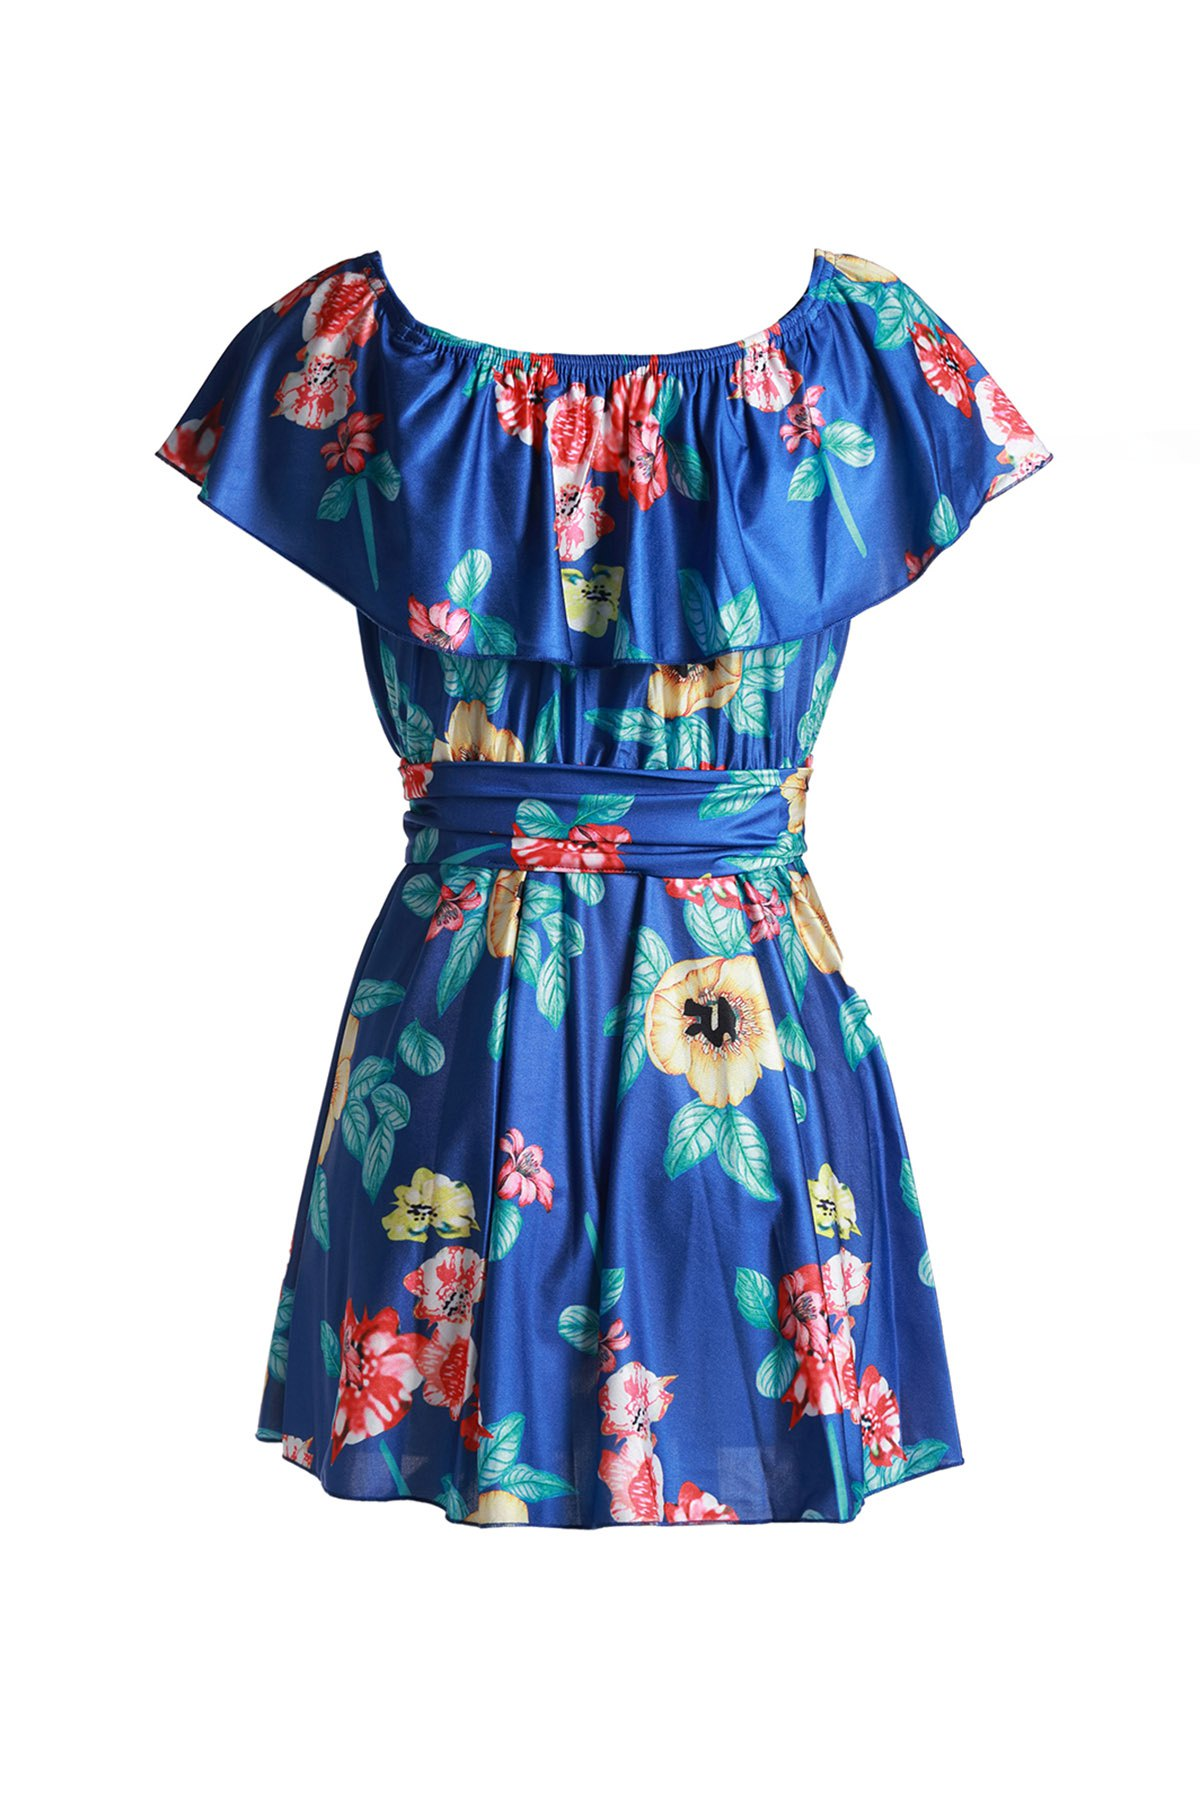 Endearing Floral Printed Off-The-Shoulder Flounce Mini Dress For Women - SAPPHIRE BLUE XL